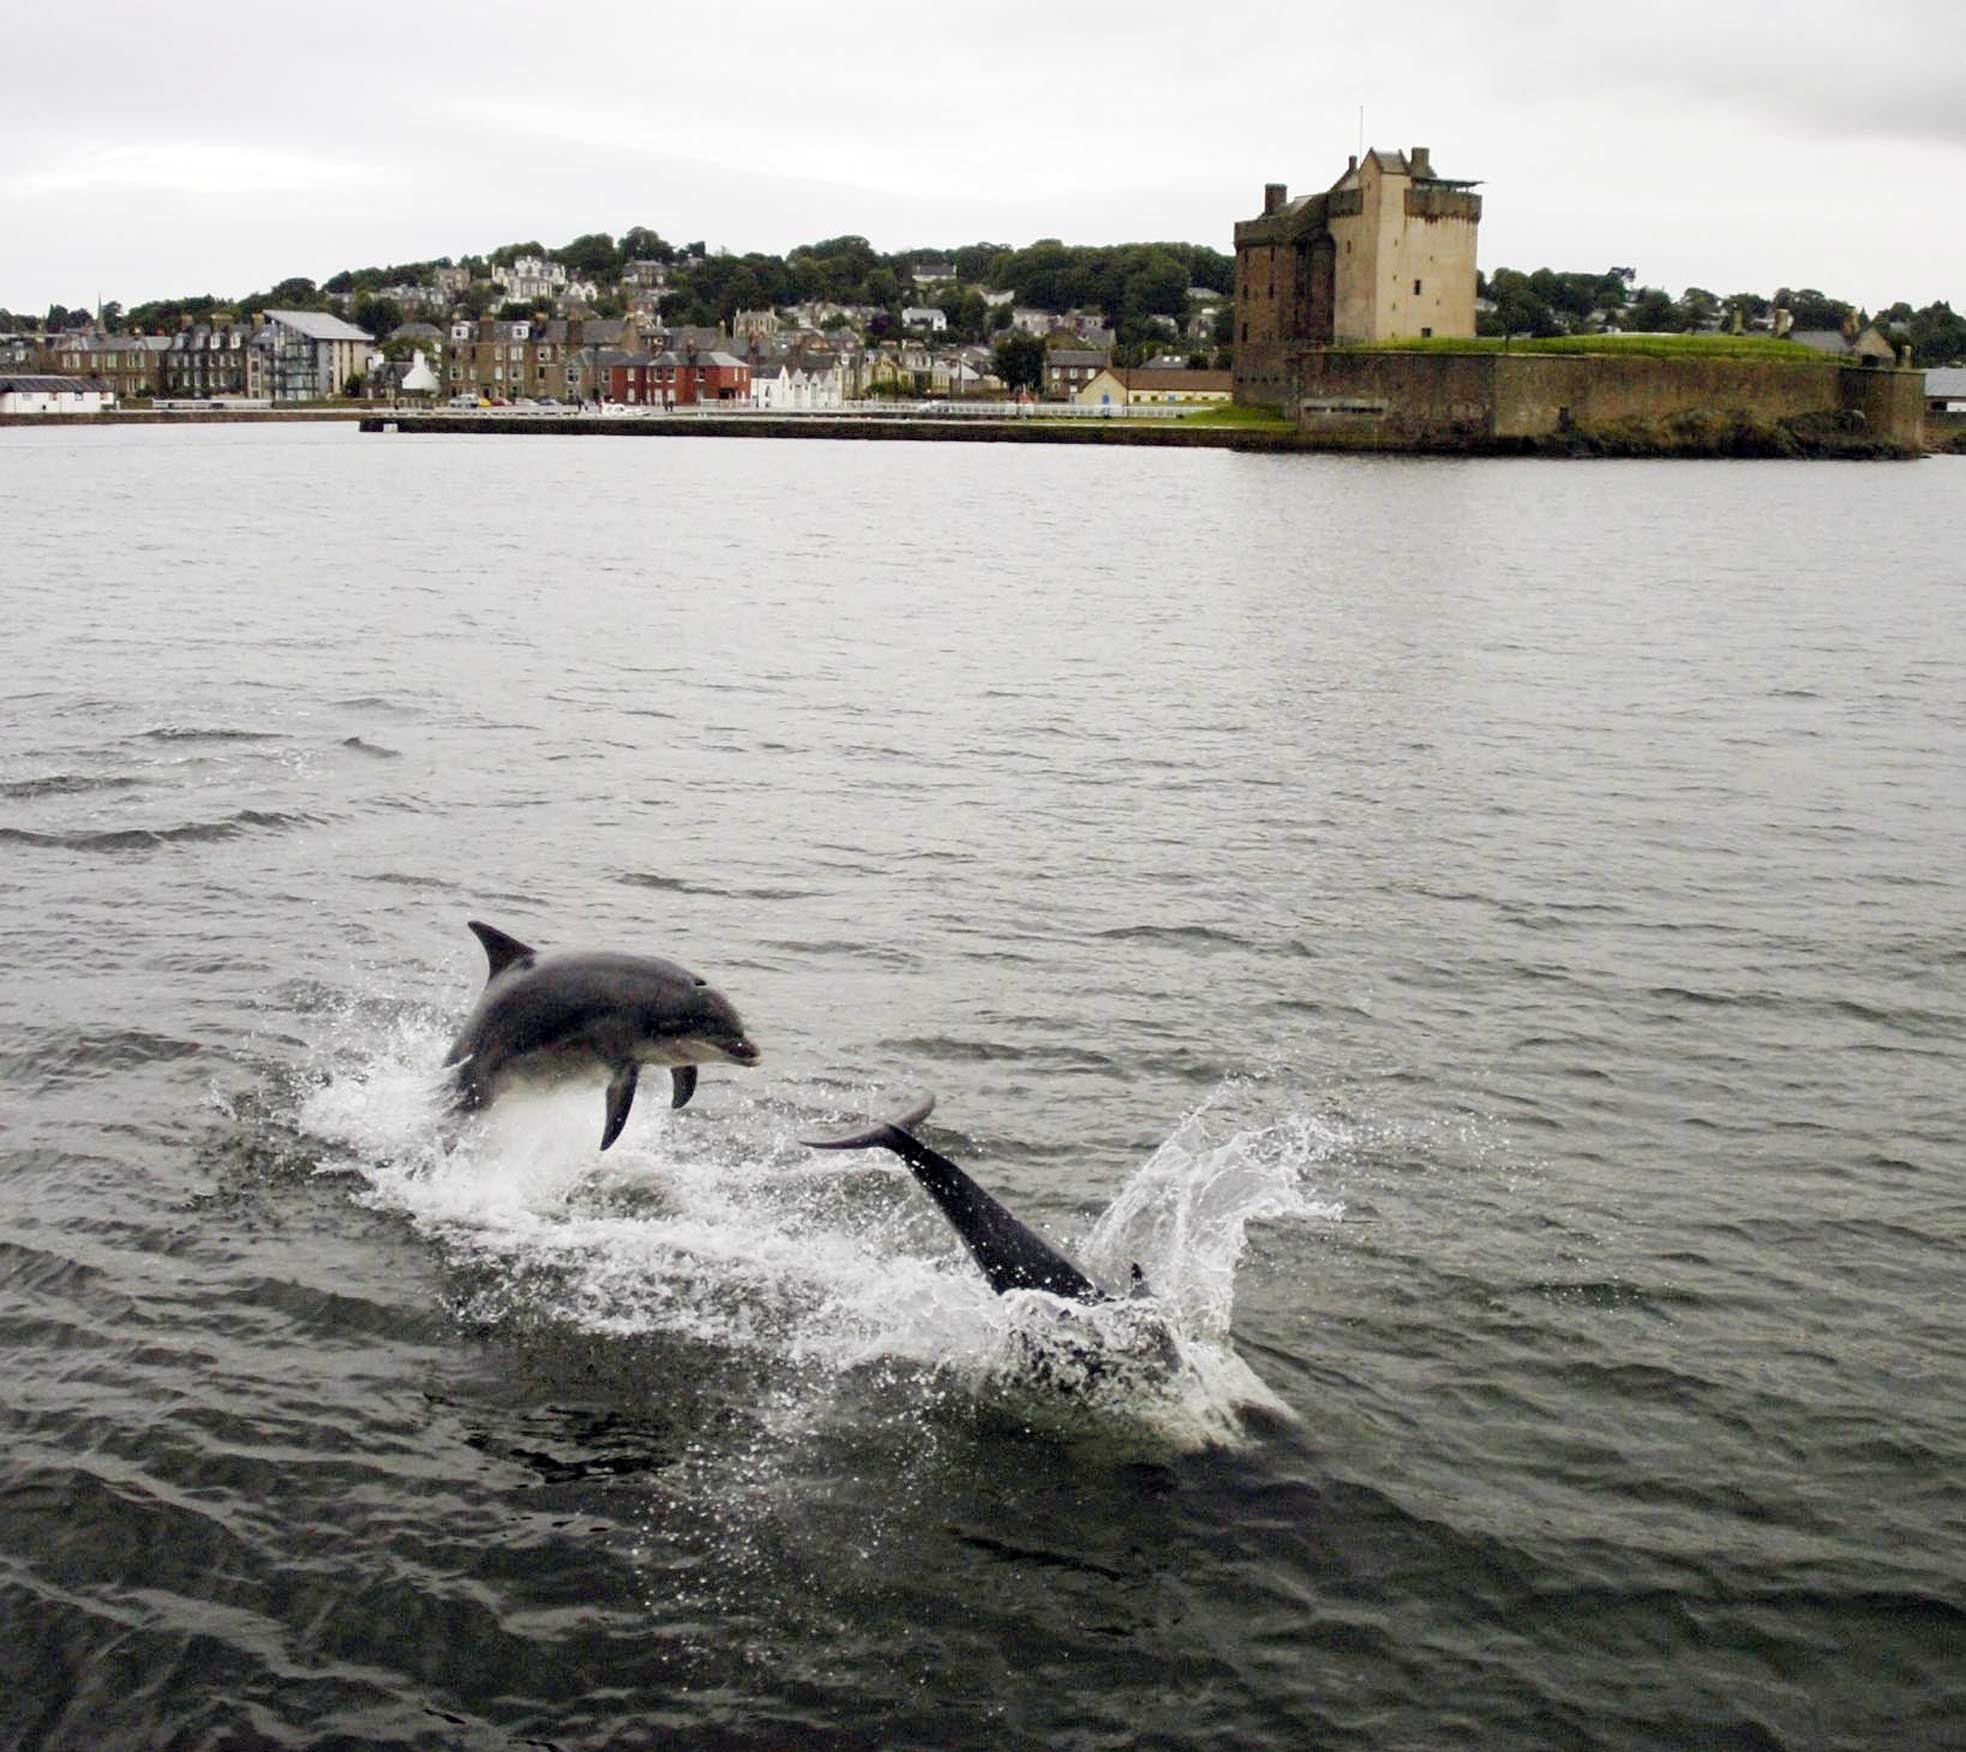 Dolphins in the Tay off Broughty Ferry Castle.